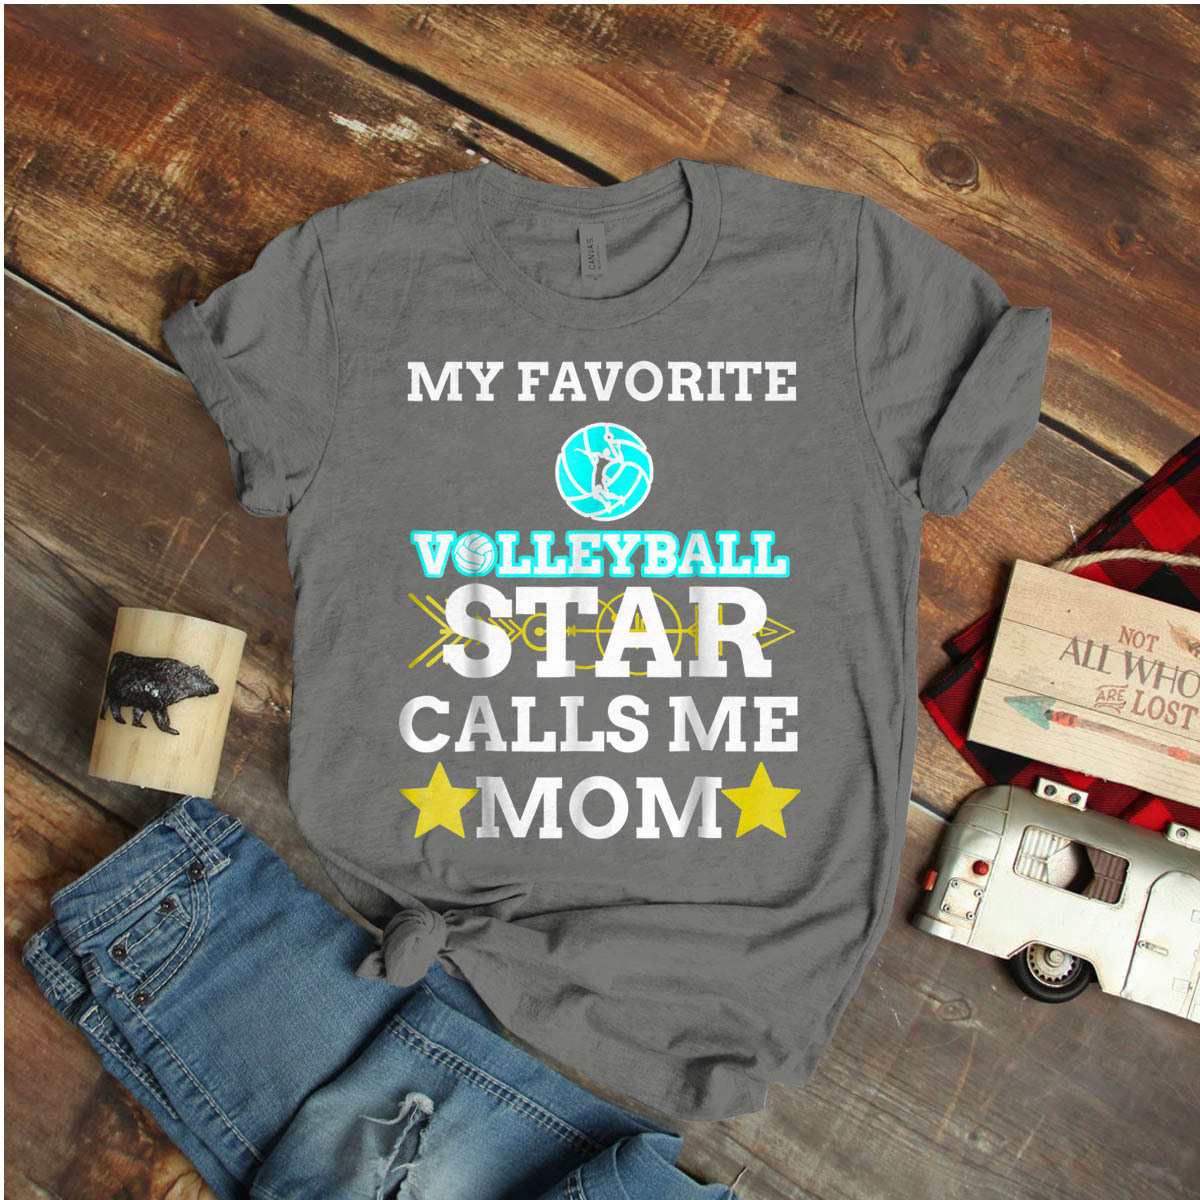 Volleyball Star Calls Me Mom Mother'S Day Ideas Birthday Gift Vintage Funny